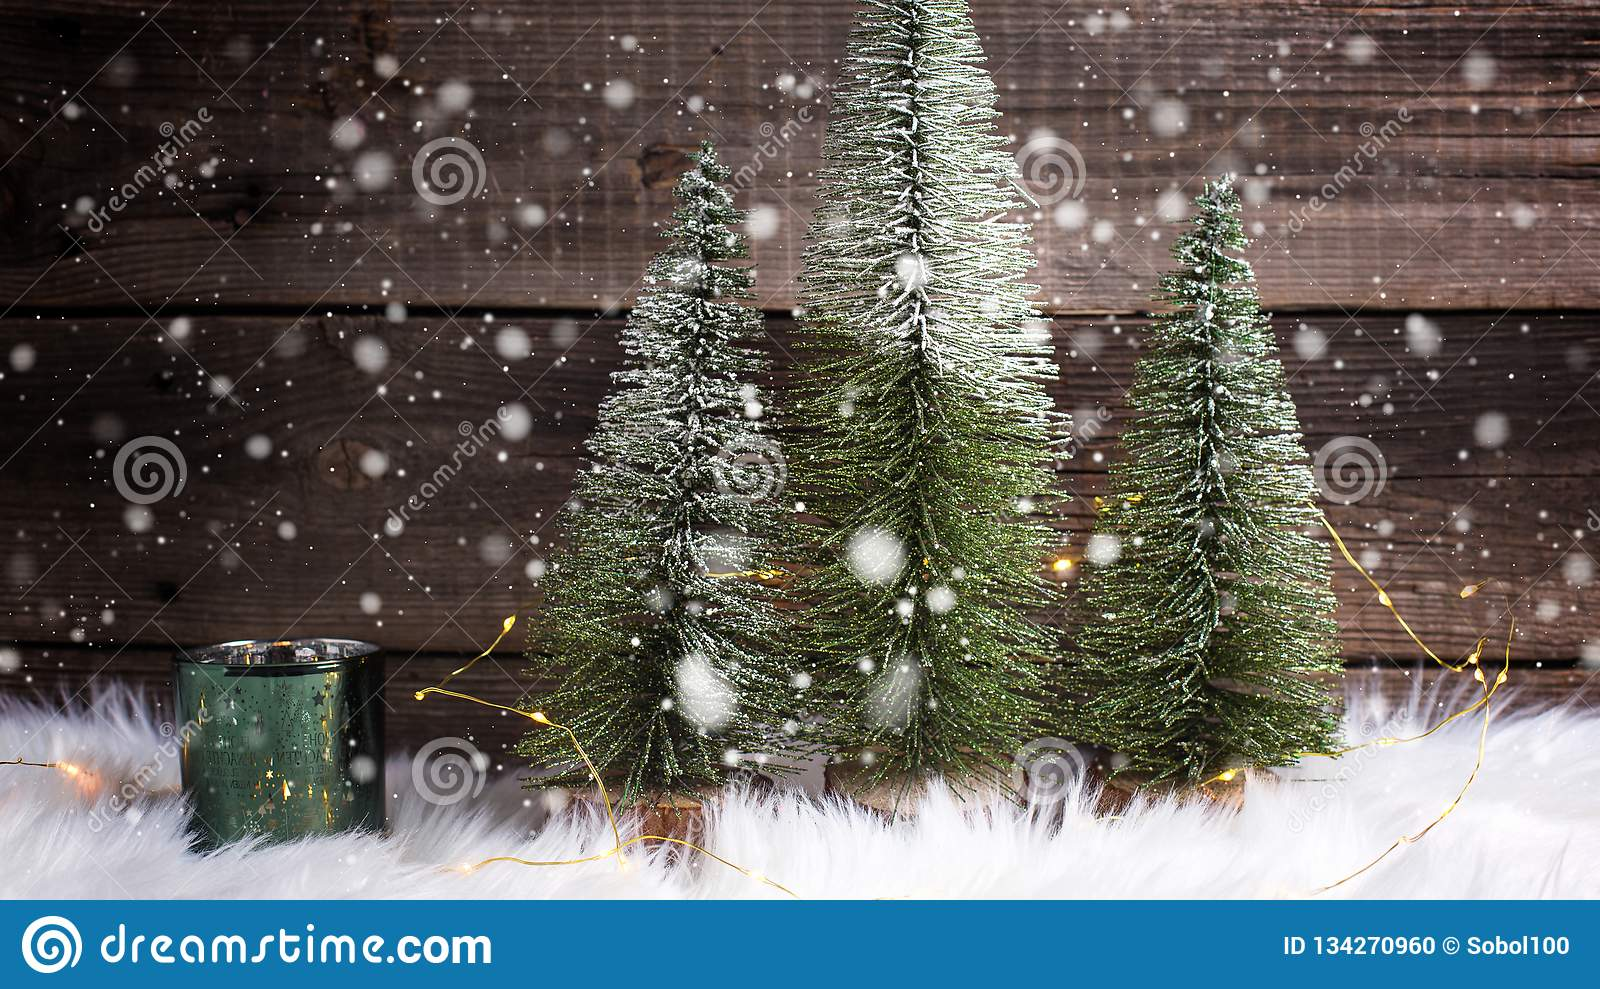 Decorative fir trees, green candleholder and fairy lights on white fur background against vintage wooden wall